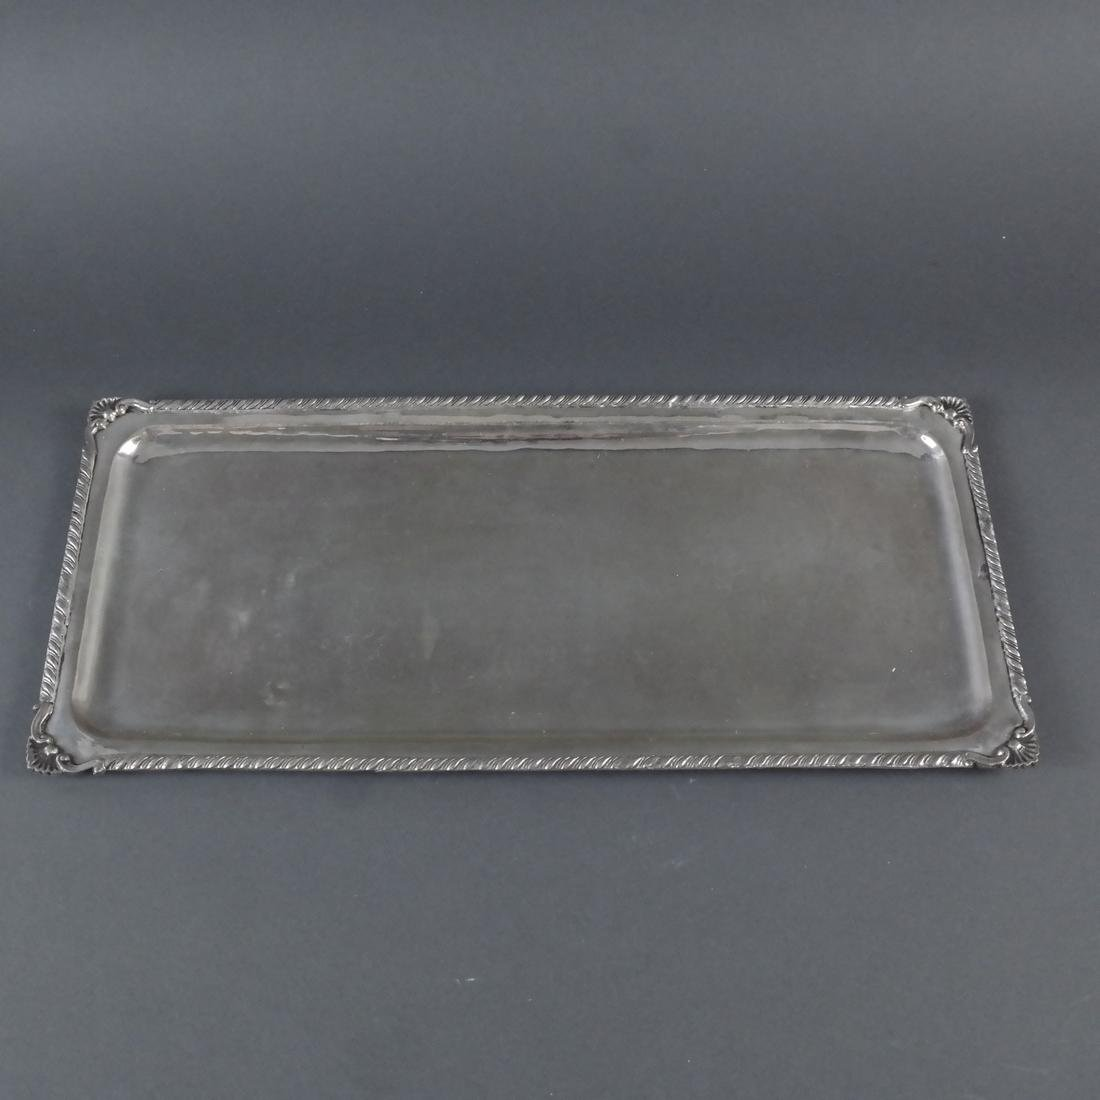 2 .900 Standard Silver Rectangular Trays - 4